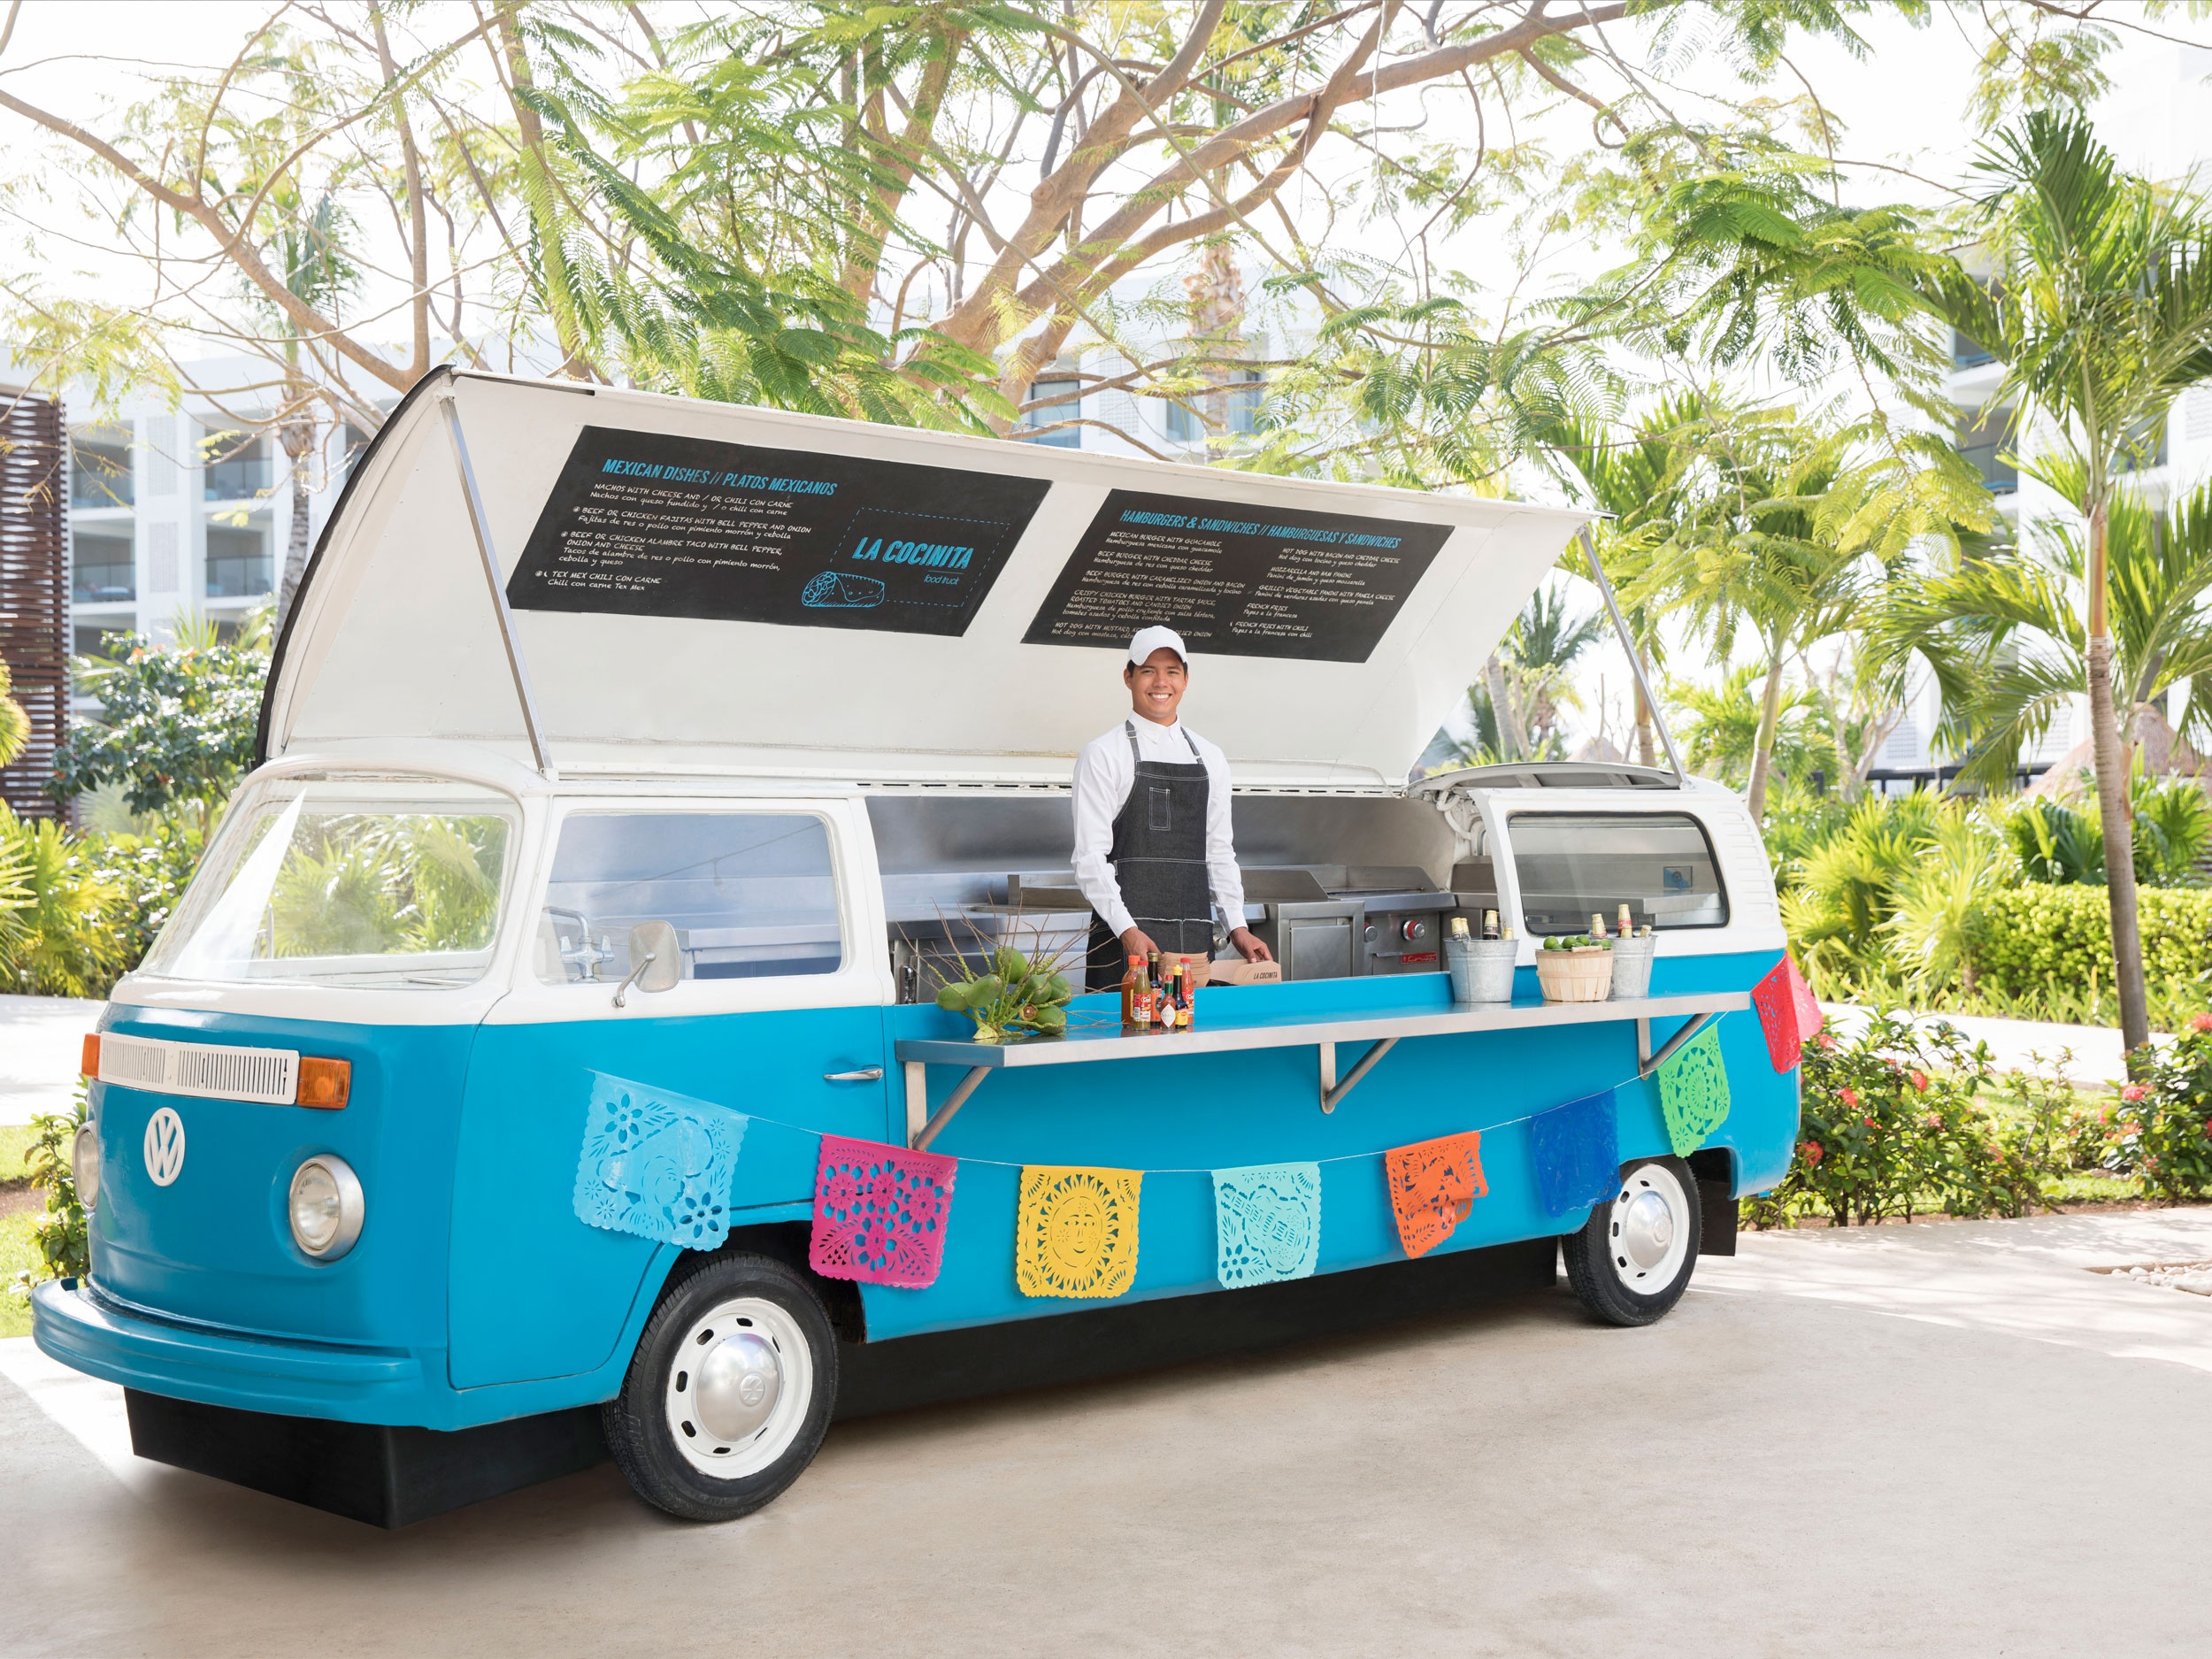 Cancun Resort Mexican Food Truck